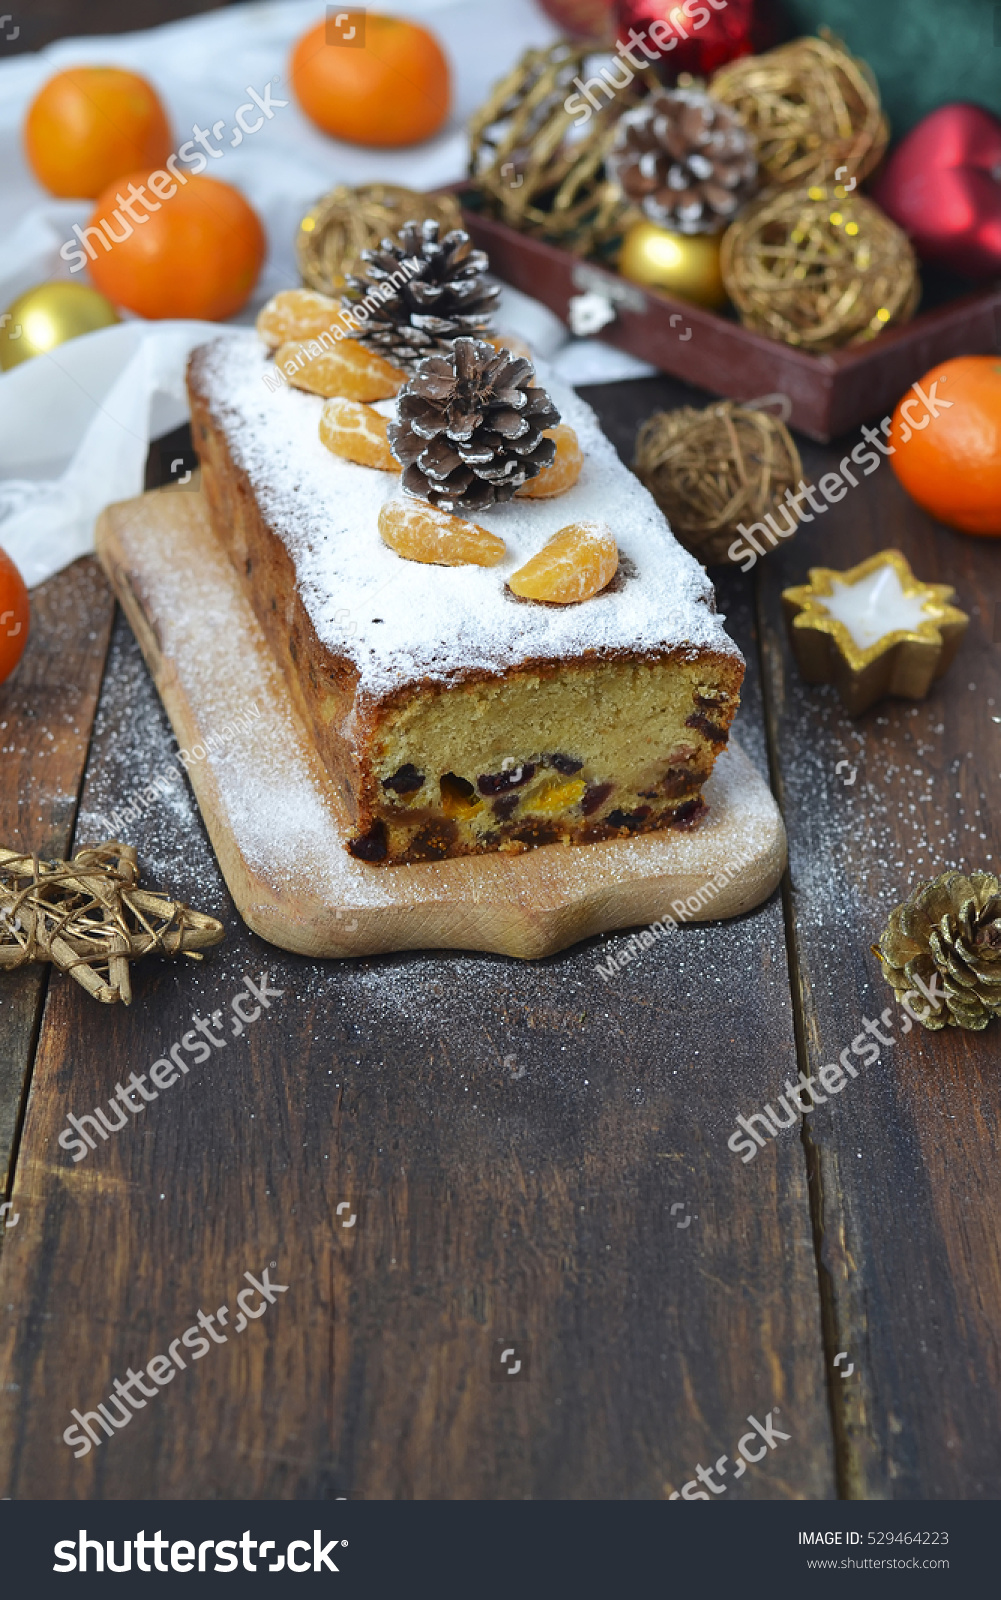 Dried Fruit Cake Decoration : Christmas Cake Dried Fruits Tangerines Stock Photo ...